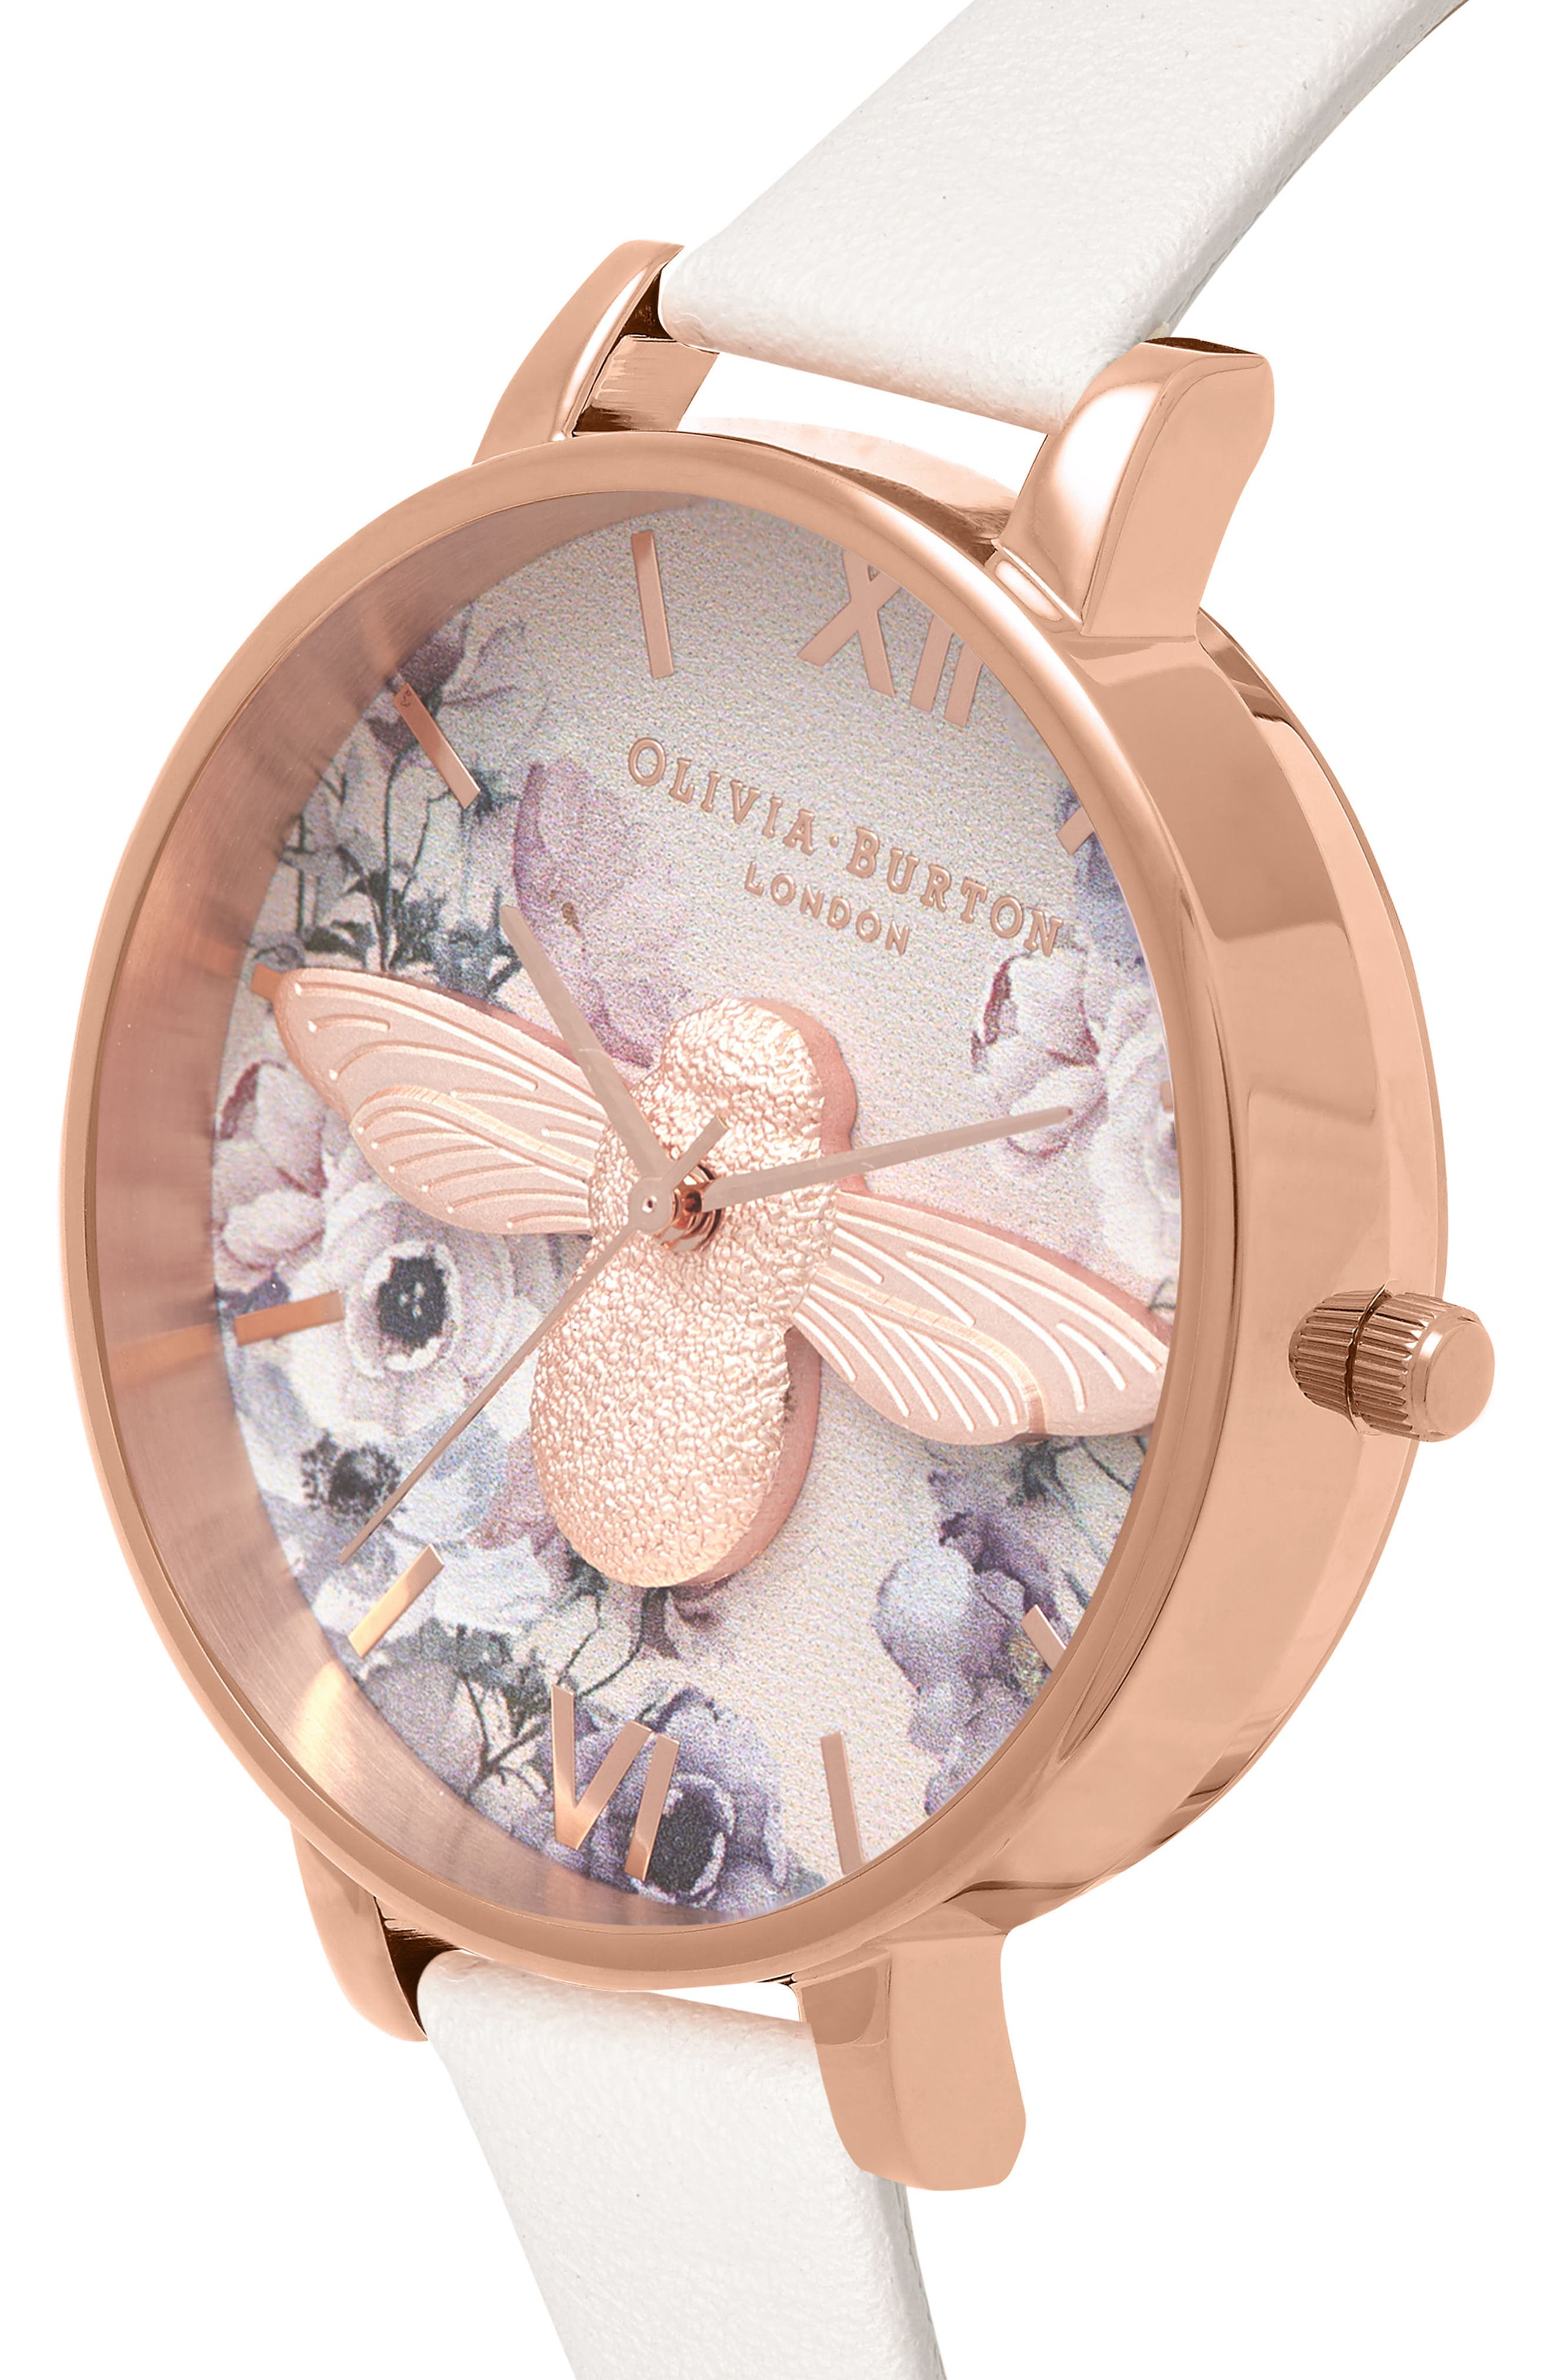 Watercolor Floral Leather Strap Watch, 38mm,                             Alternate thumbnail 3, color,                             BLUSH/ BEE/ ROSE GOLD